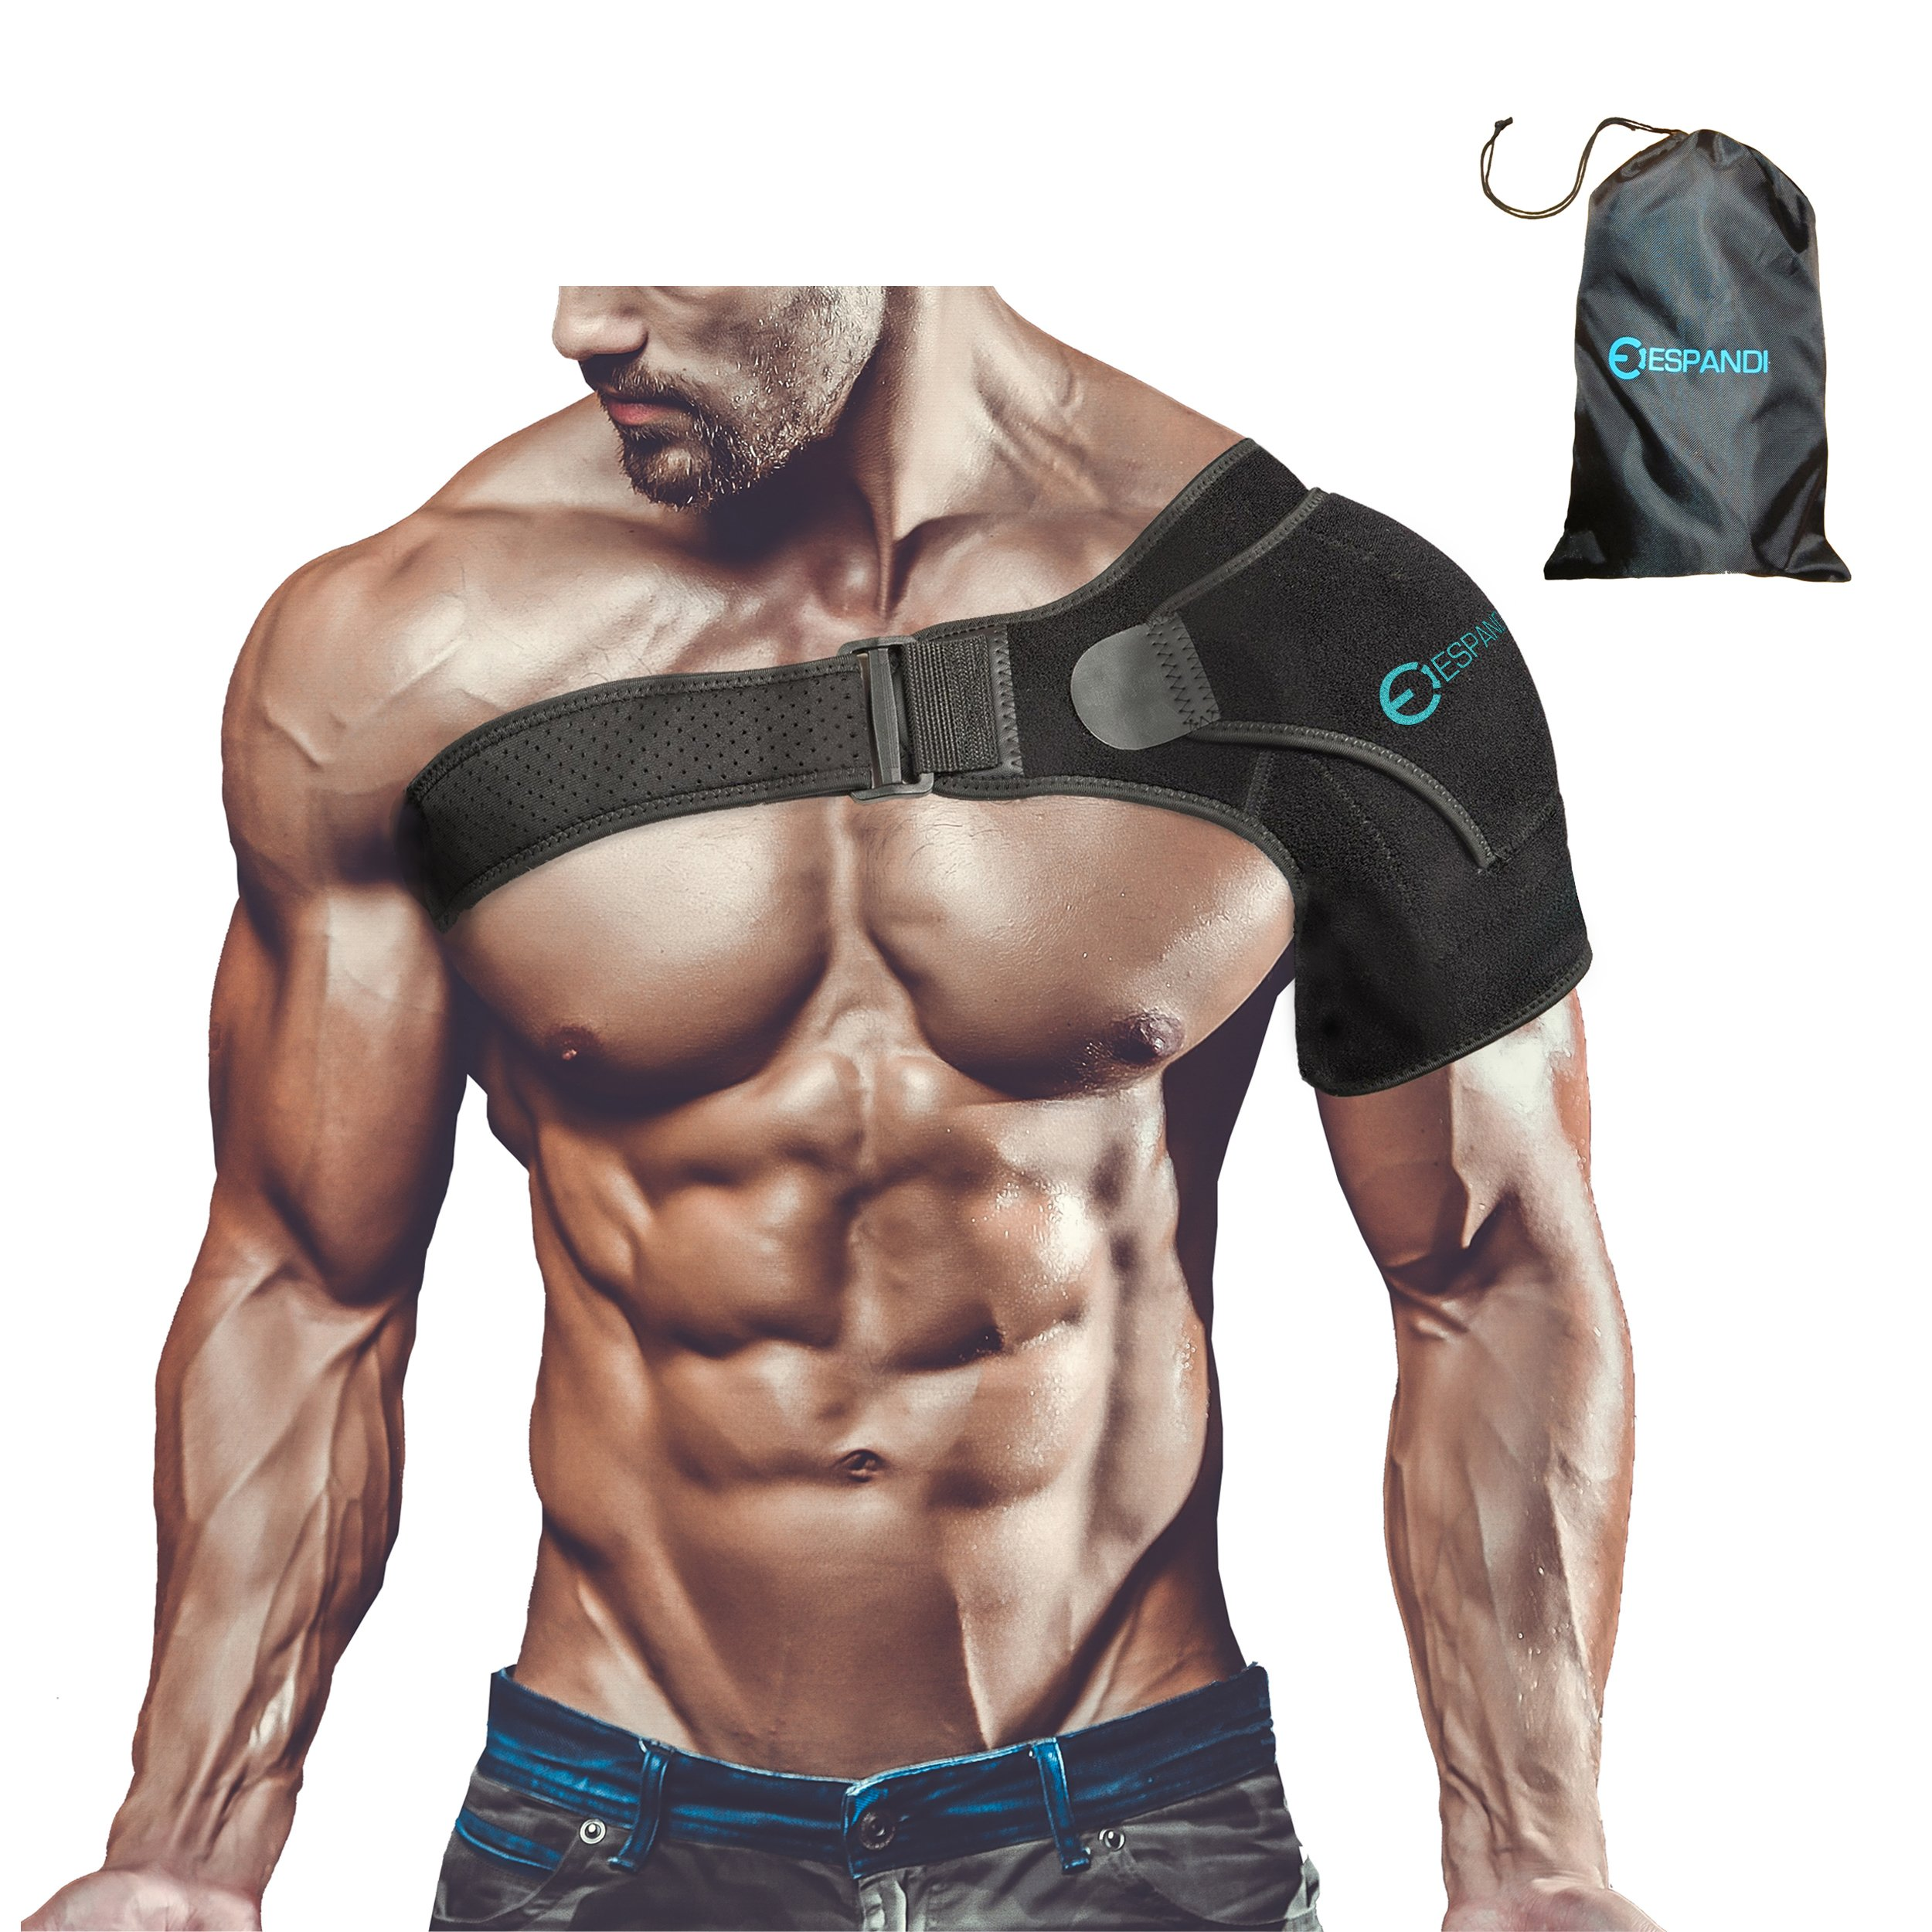 Shoulder Brace with Pressure Pad for women or men; Rotator Cuff Support for Injury Prevention; Dislocated AC Joint; Labrum Tear; Shoulder Pain; Sprain; Neoprene Compression Sleeve; Adjustable Strap